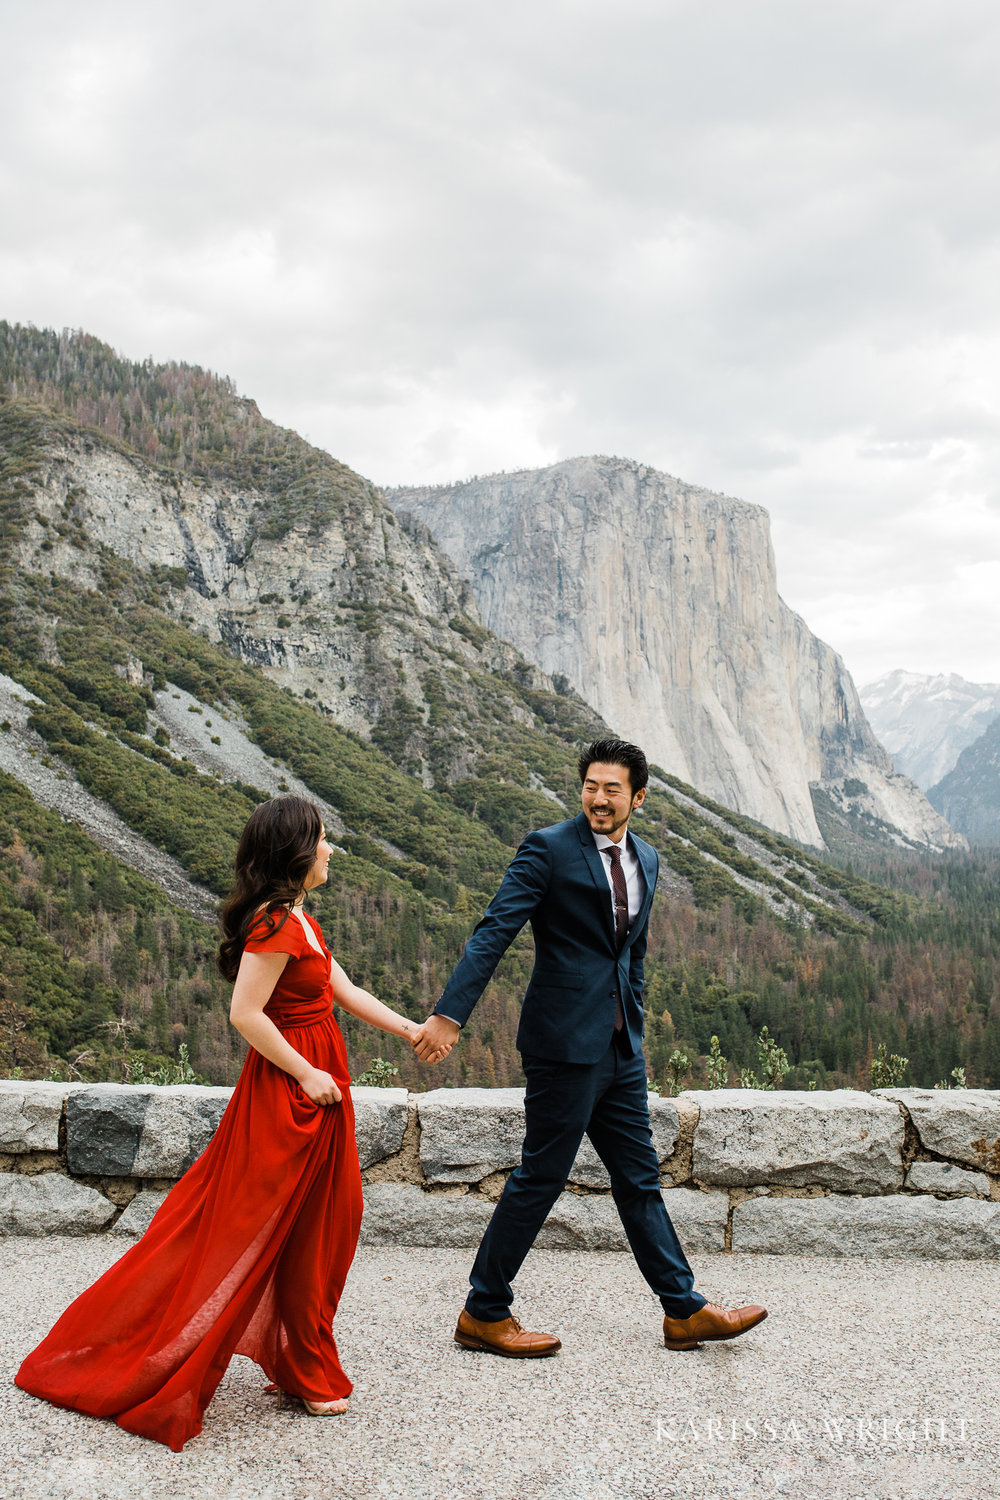 Alex-Amy-Yosemite-Engagement-13.jpg